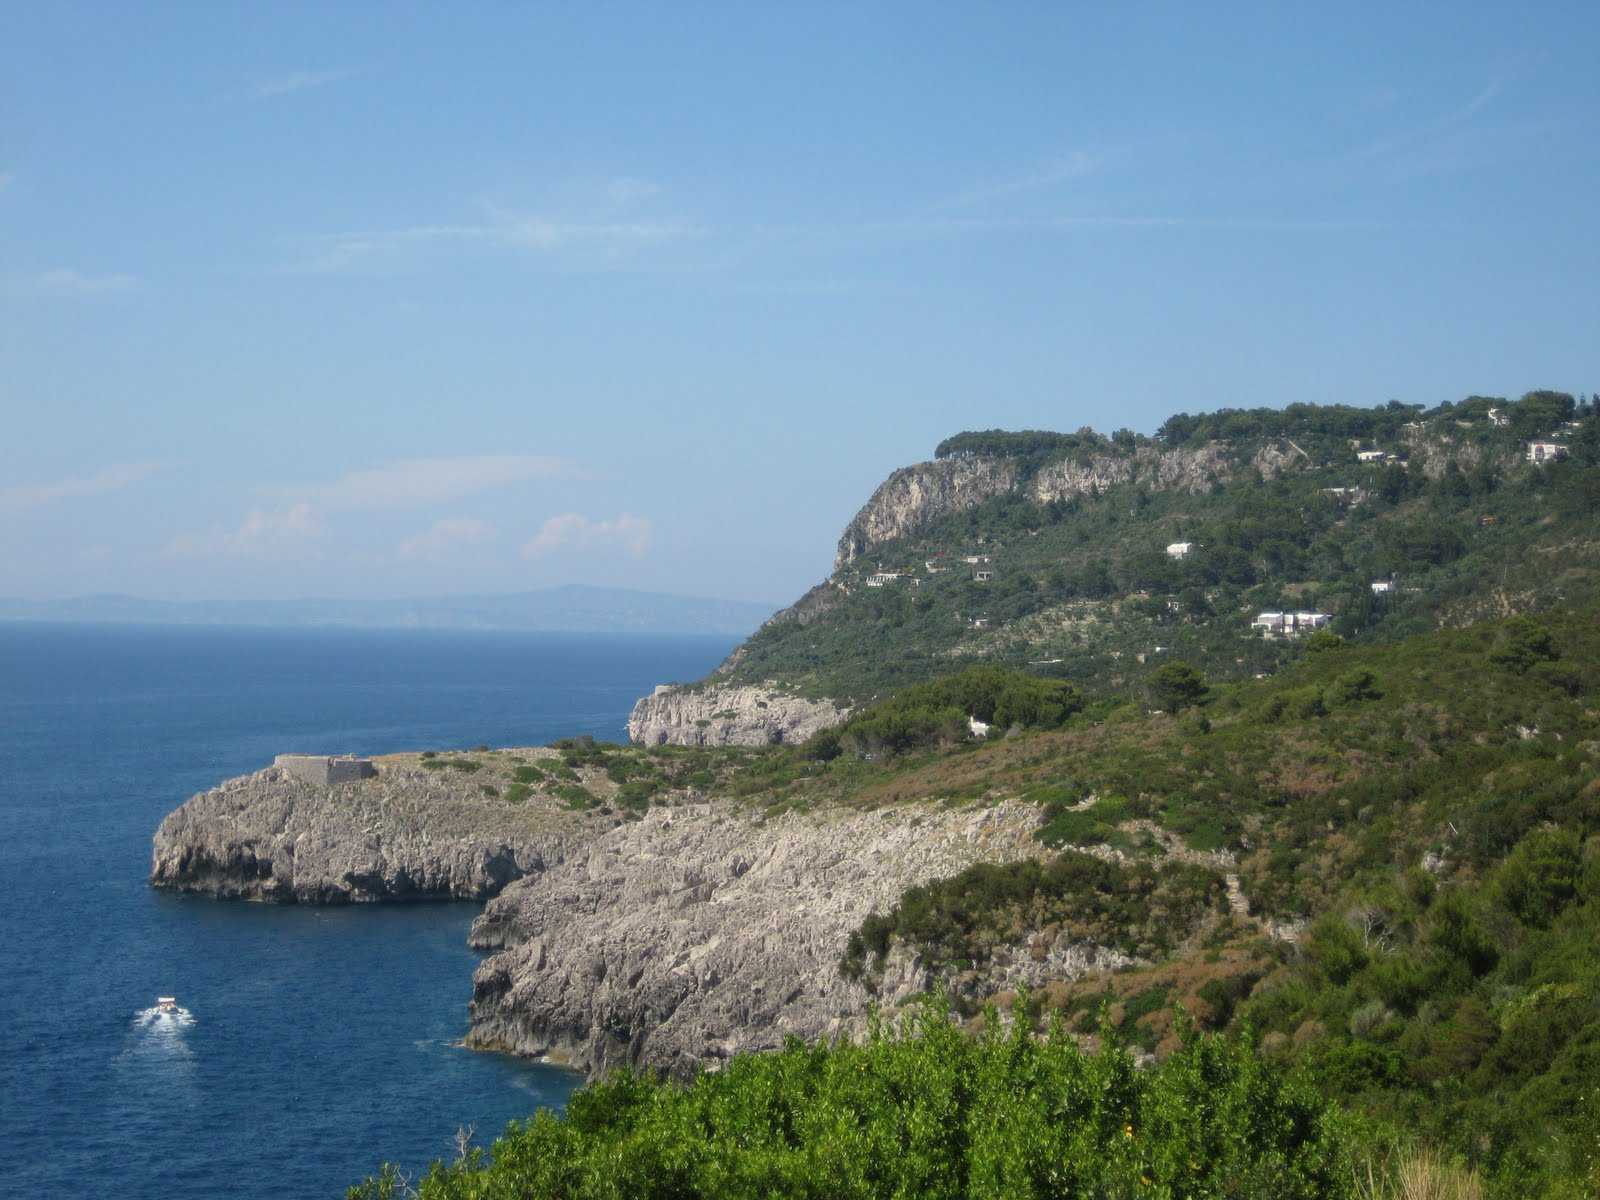 Summer In Europe Capri One Of The Most Beautiful Places On Earth